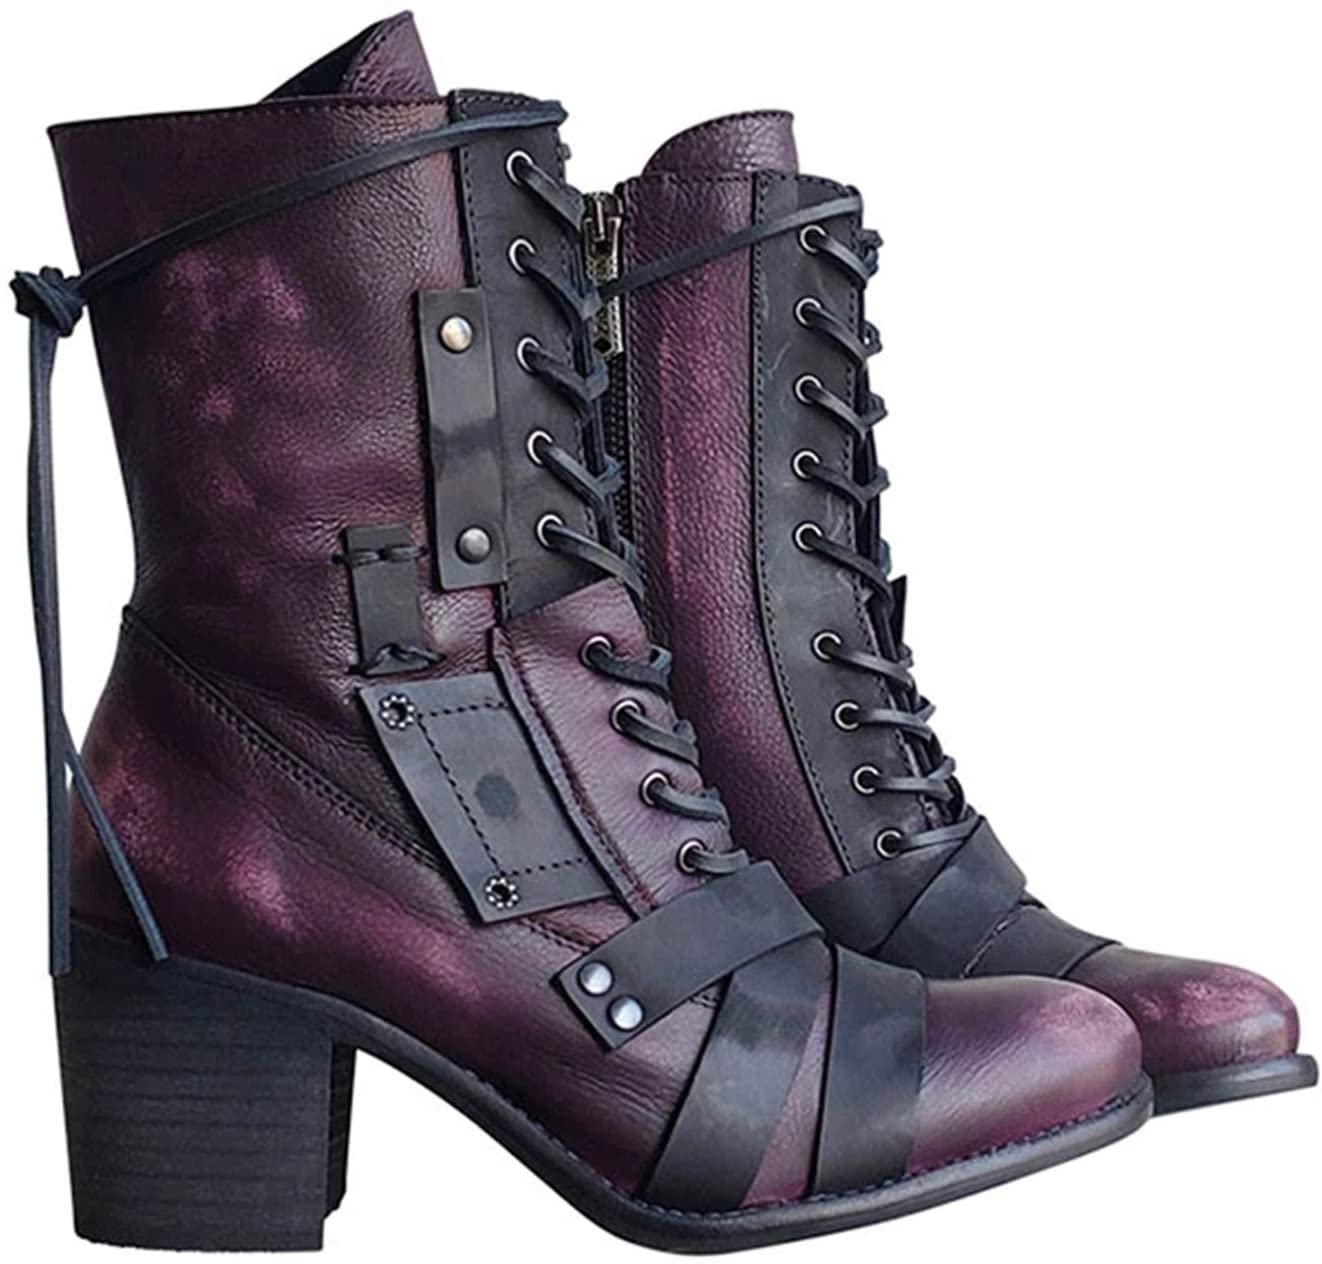 Valink Women's Retro Comfy Chunky-heel Lace-up Boots